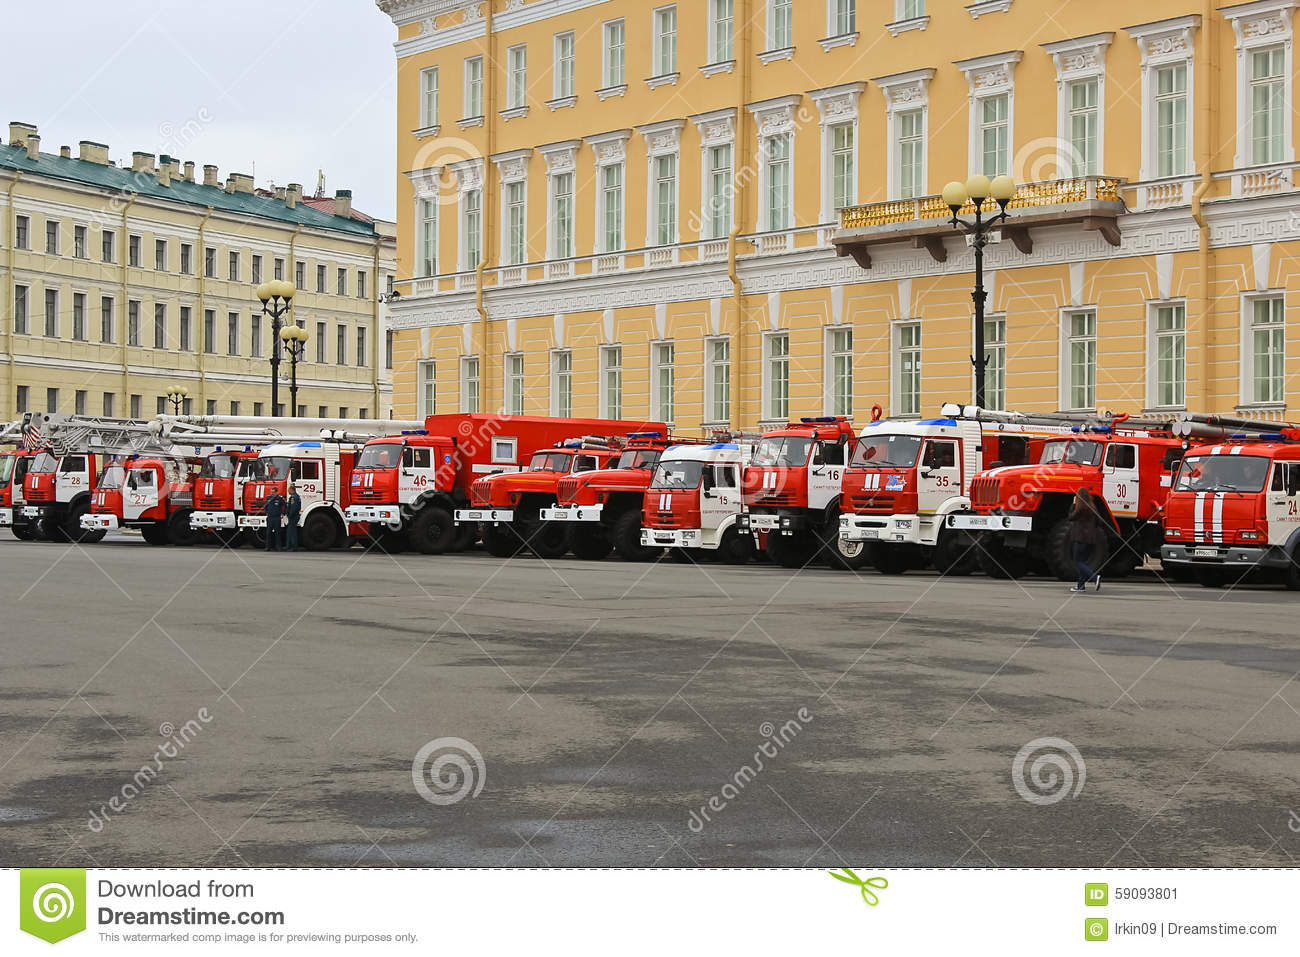 Fire & Rescue Saint-Petersburg, Russia Editorial Photo - Image of